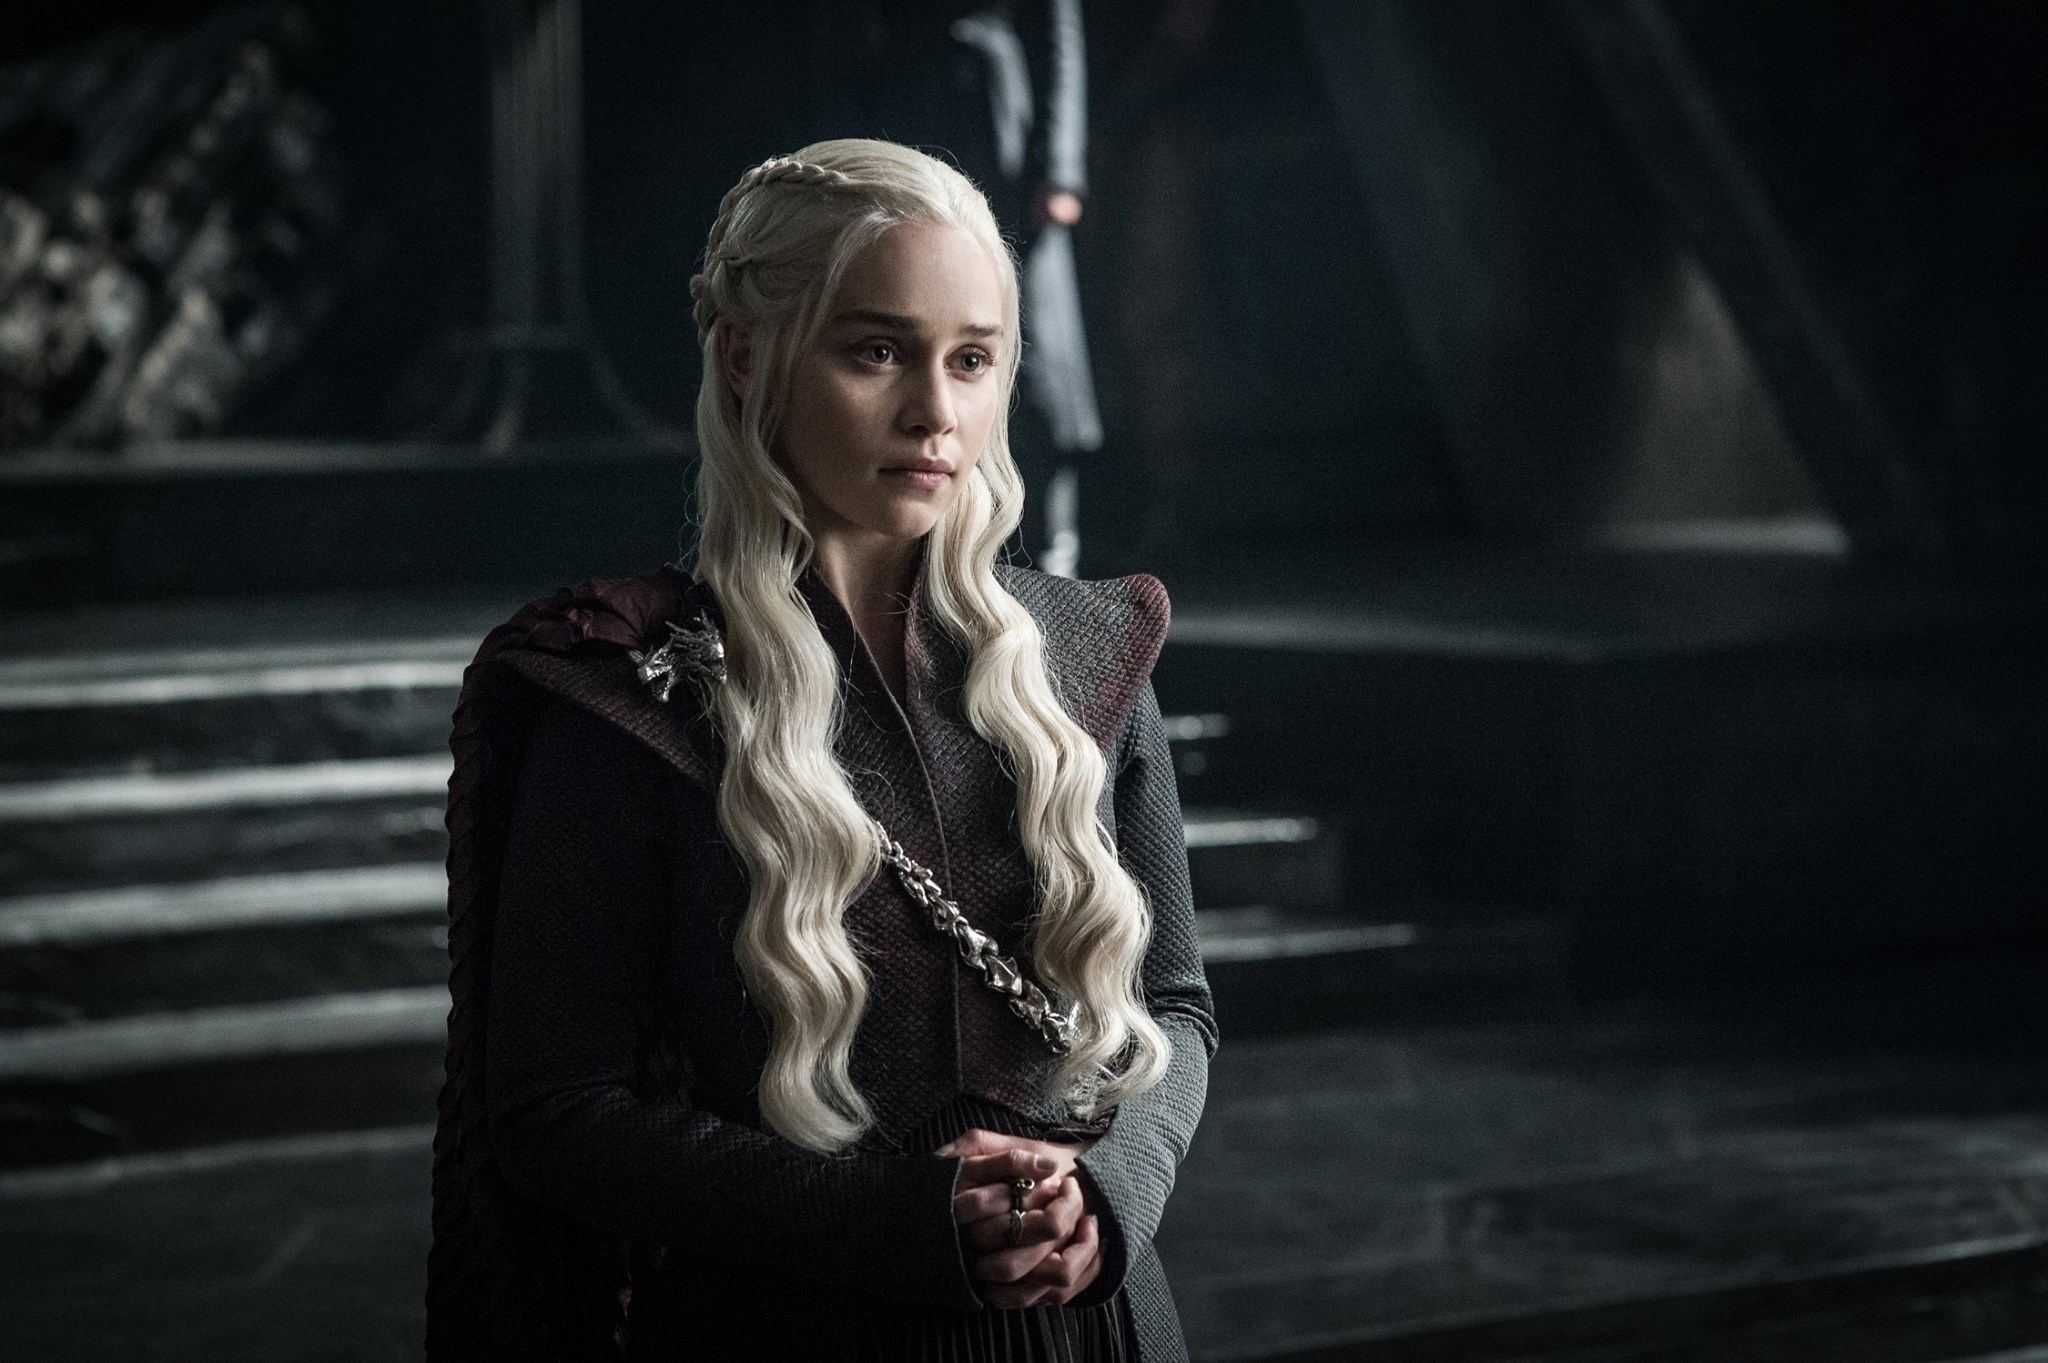 'Game of Thrones' won't return until 2019 for final season